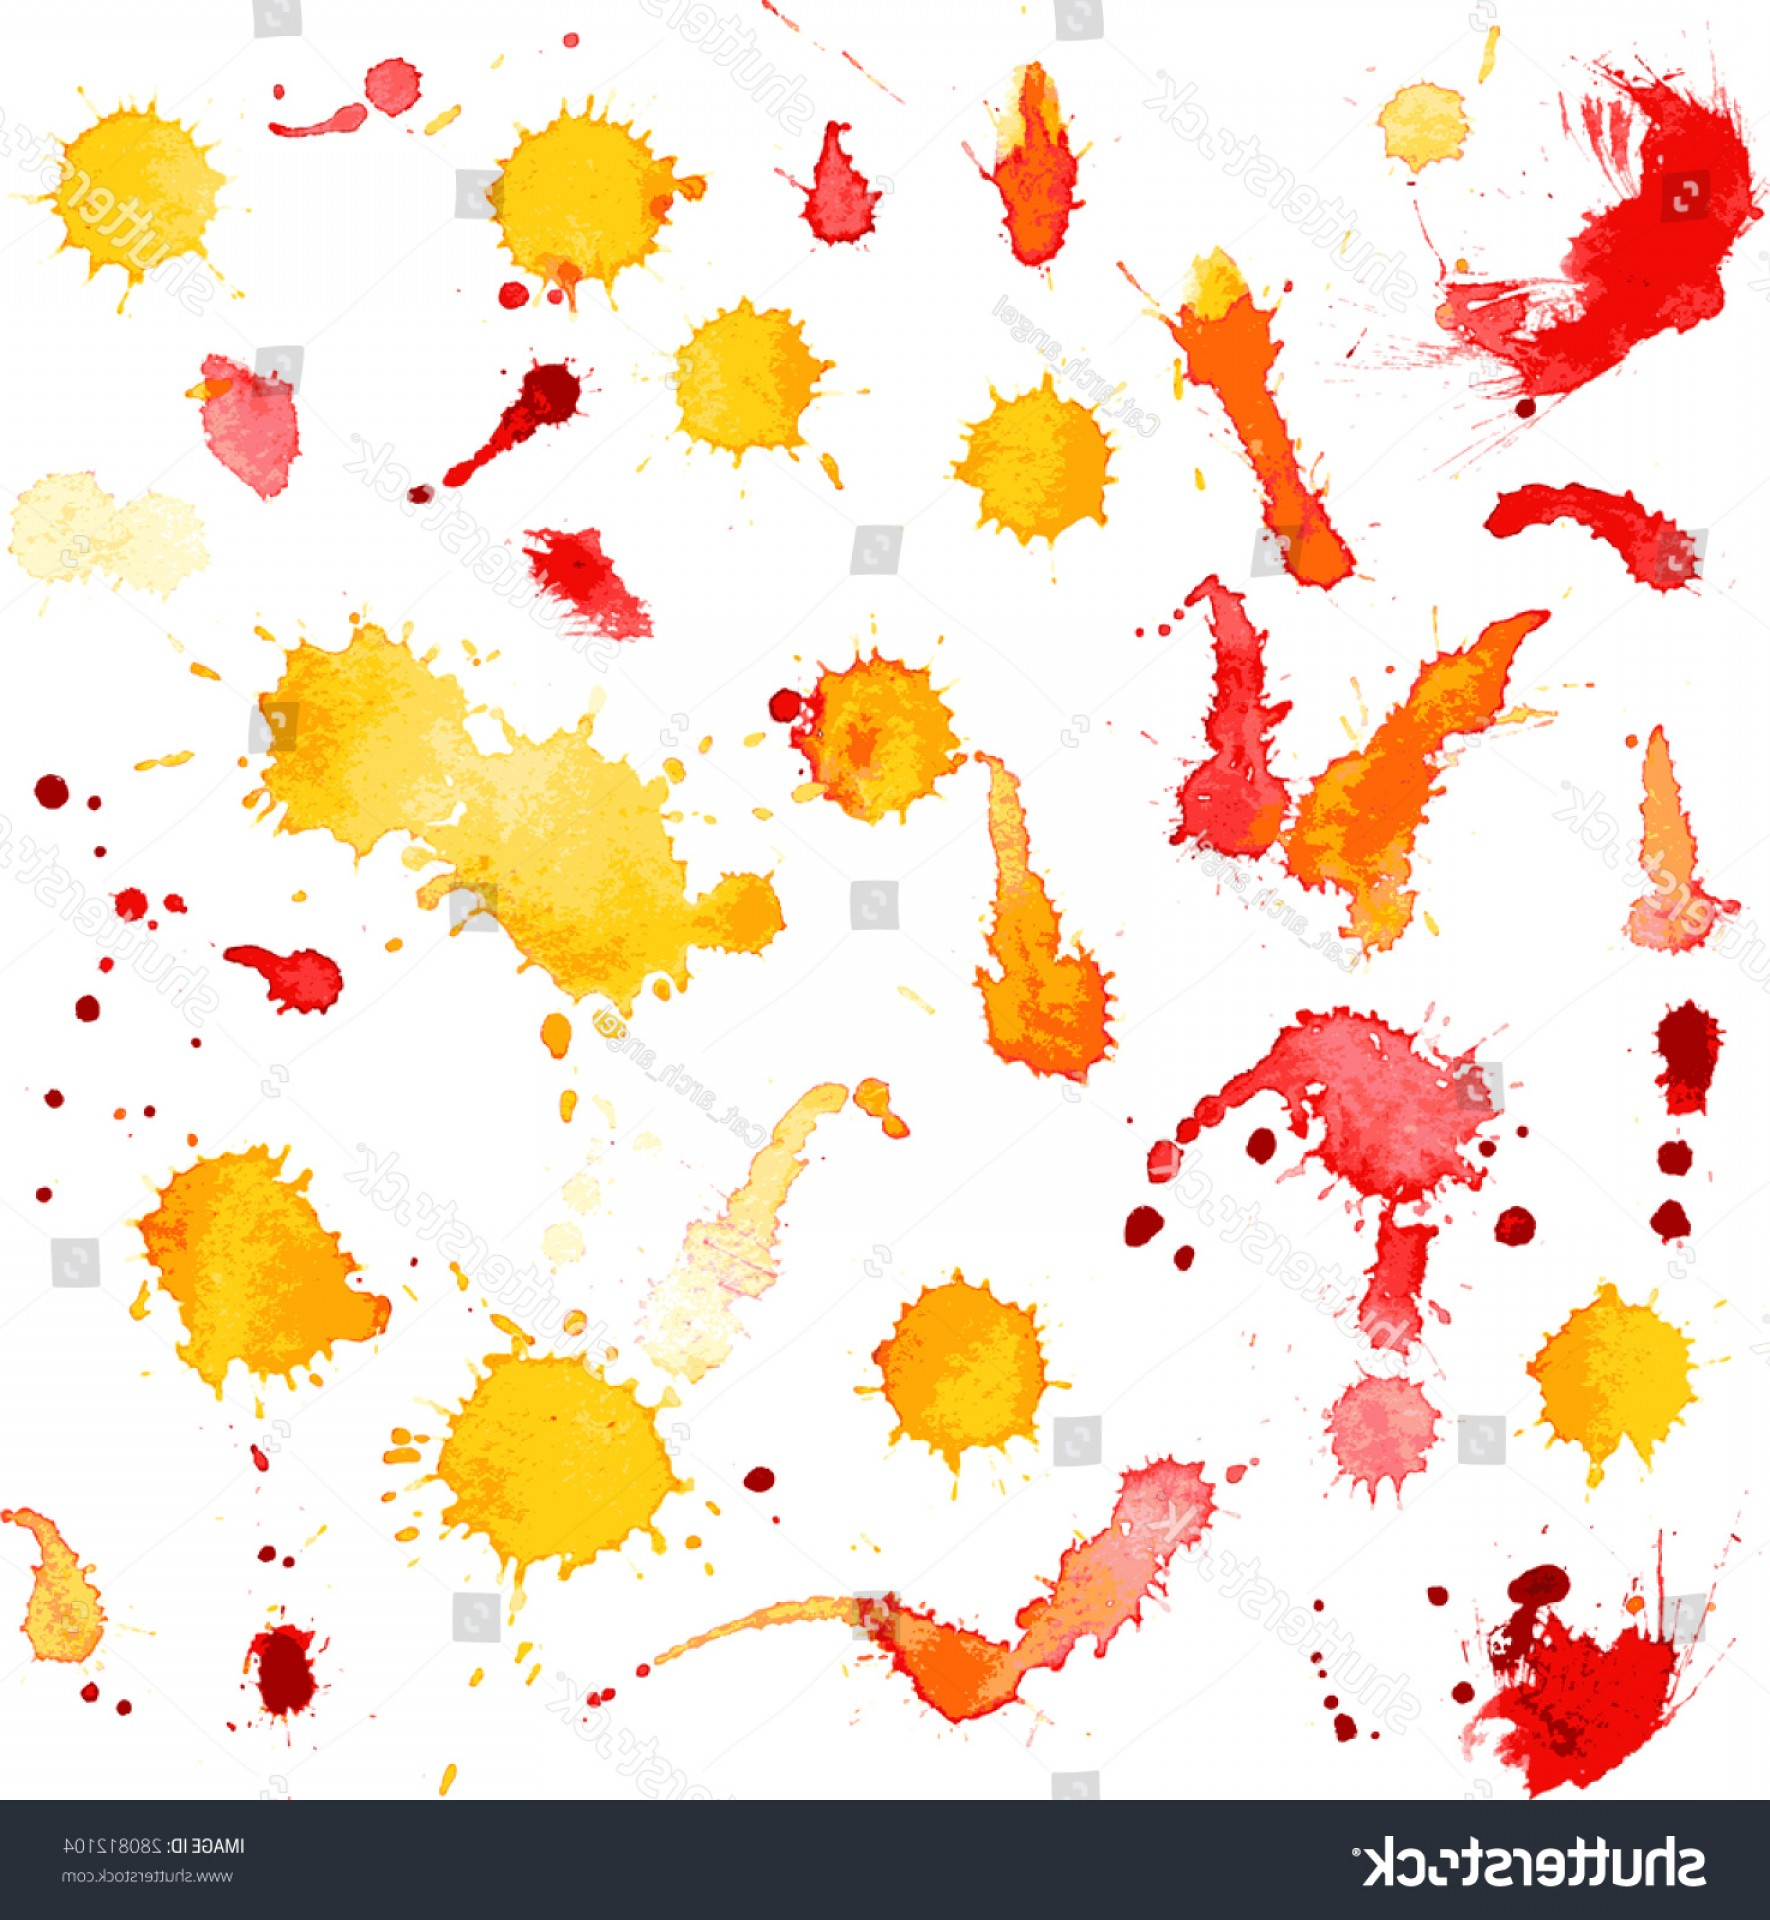 Watercolor Vector Free Designs: Vector Watercolor Background Isolated Blots Splashes